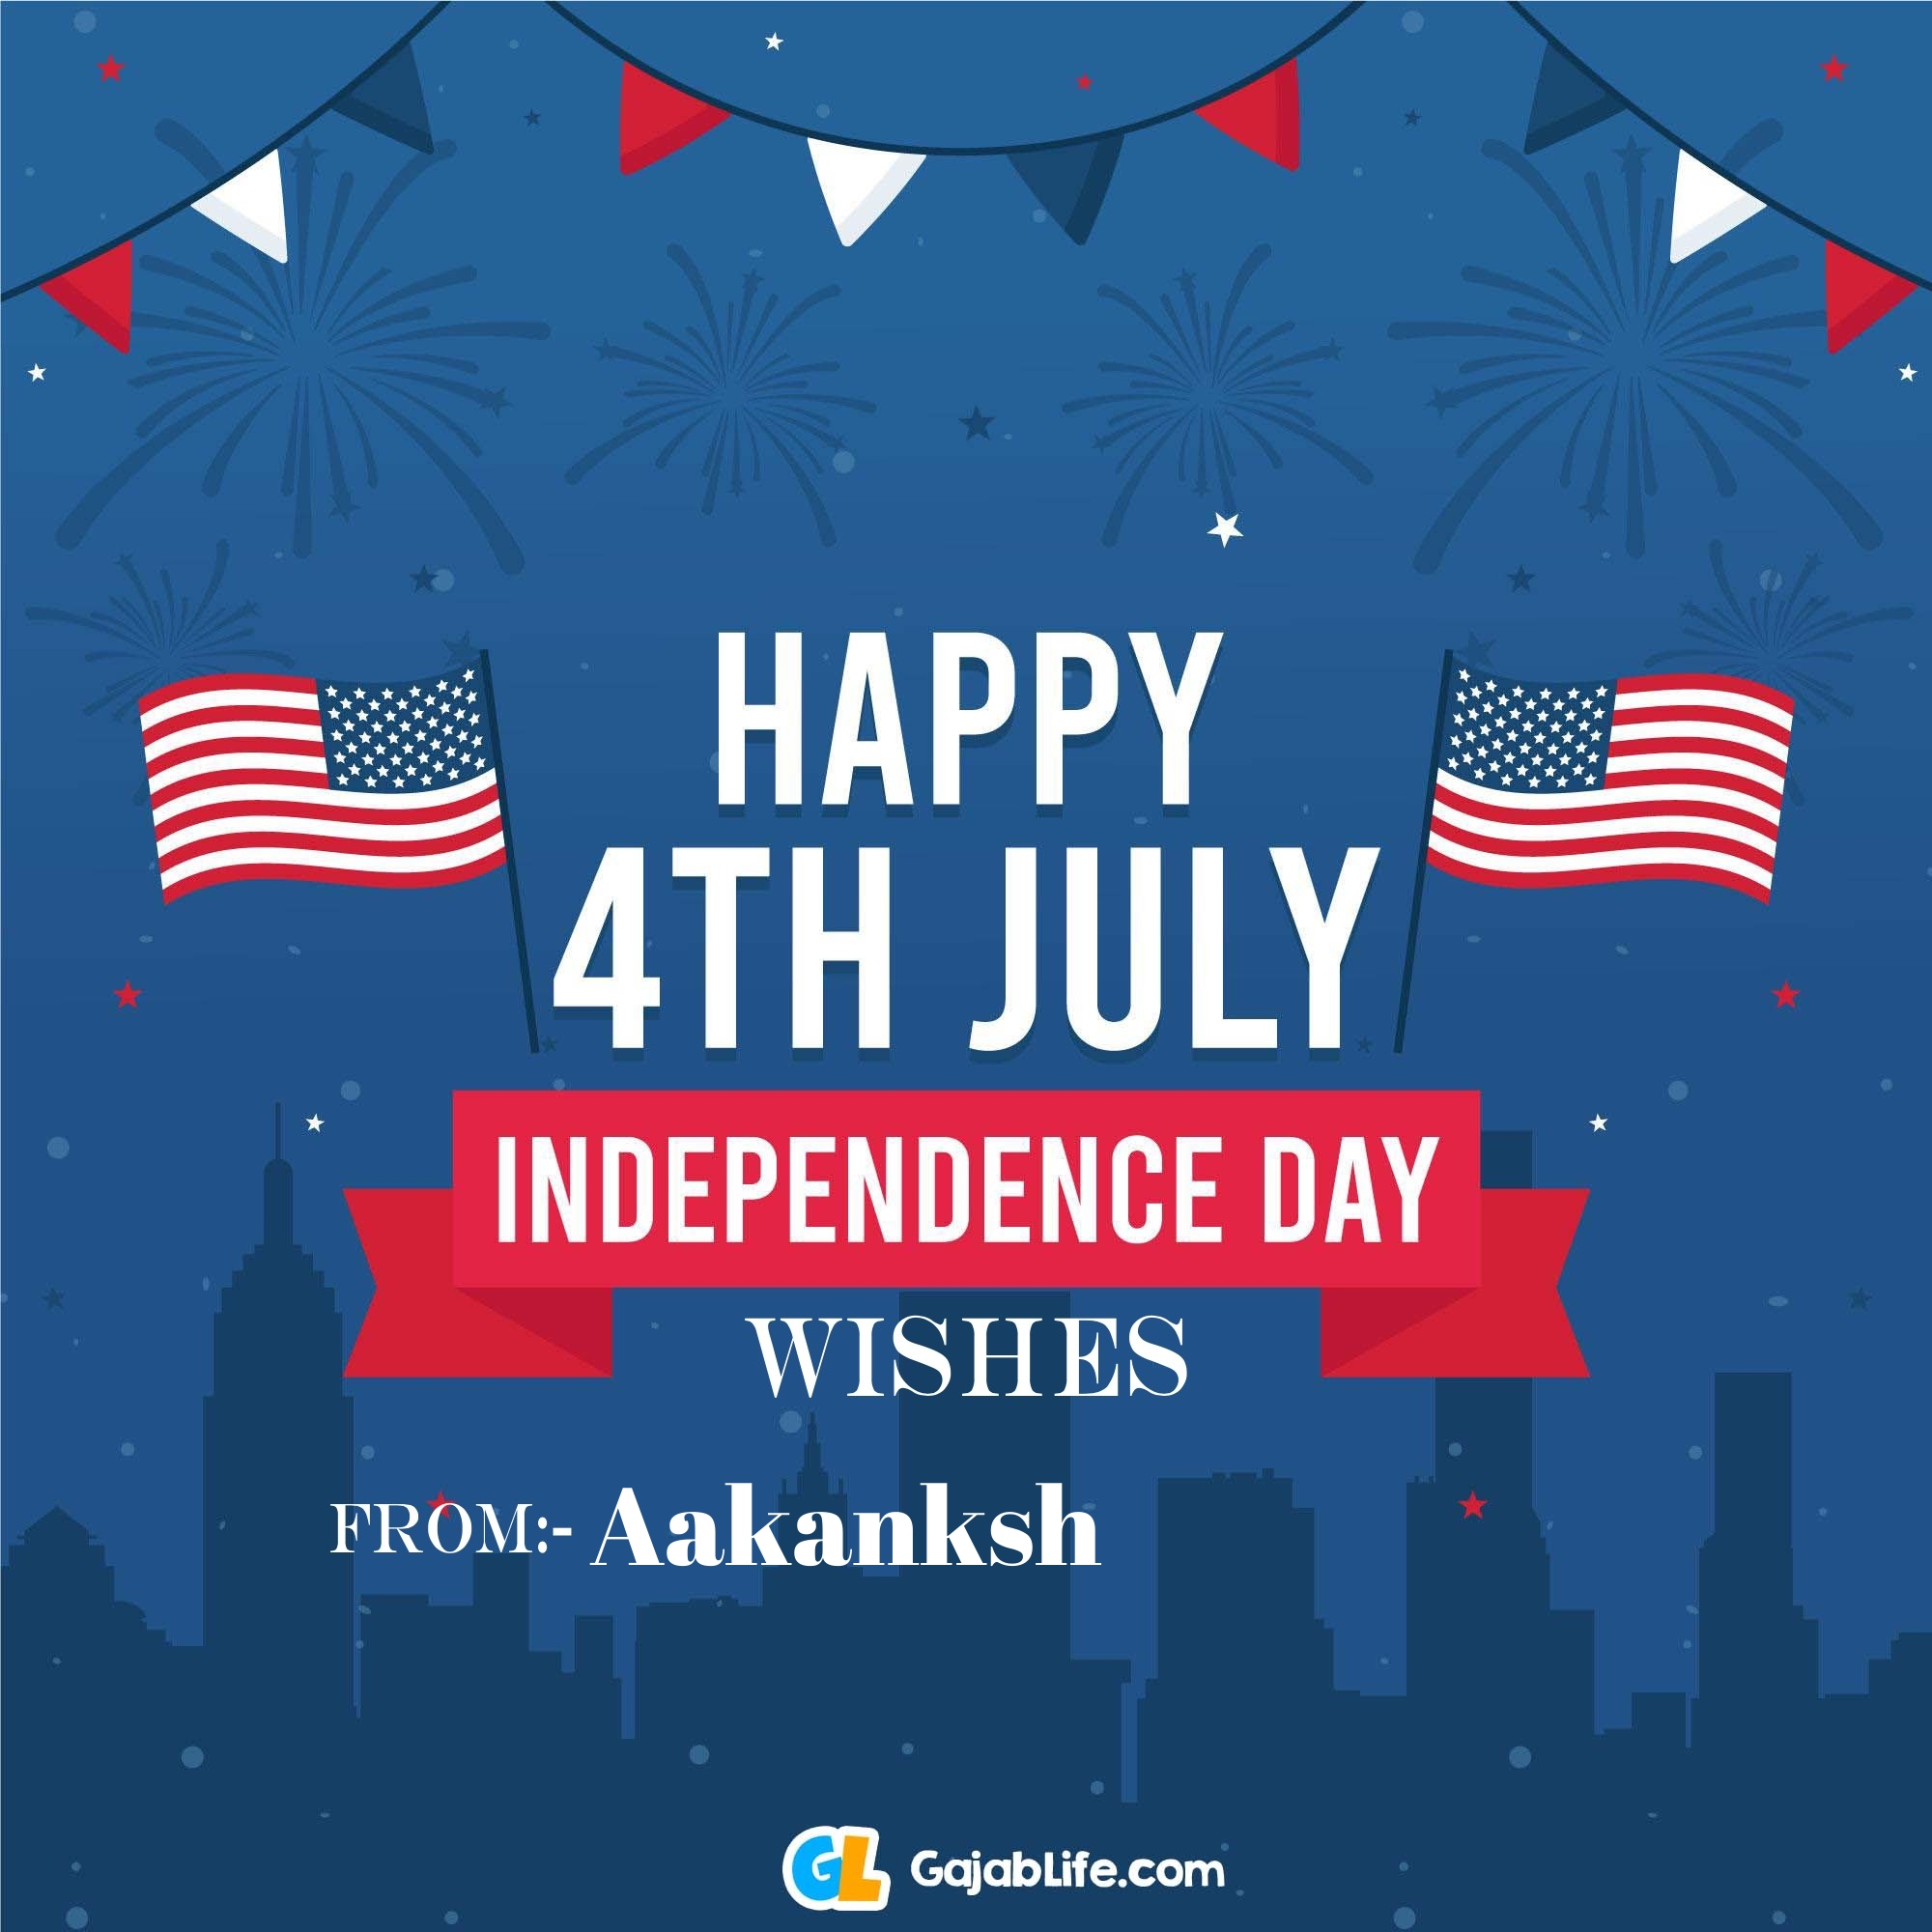 Aakanksh happy independence day united states of america images